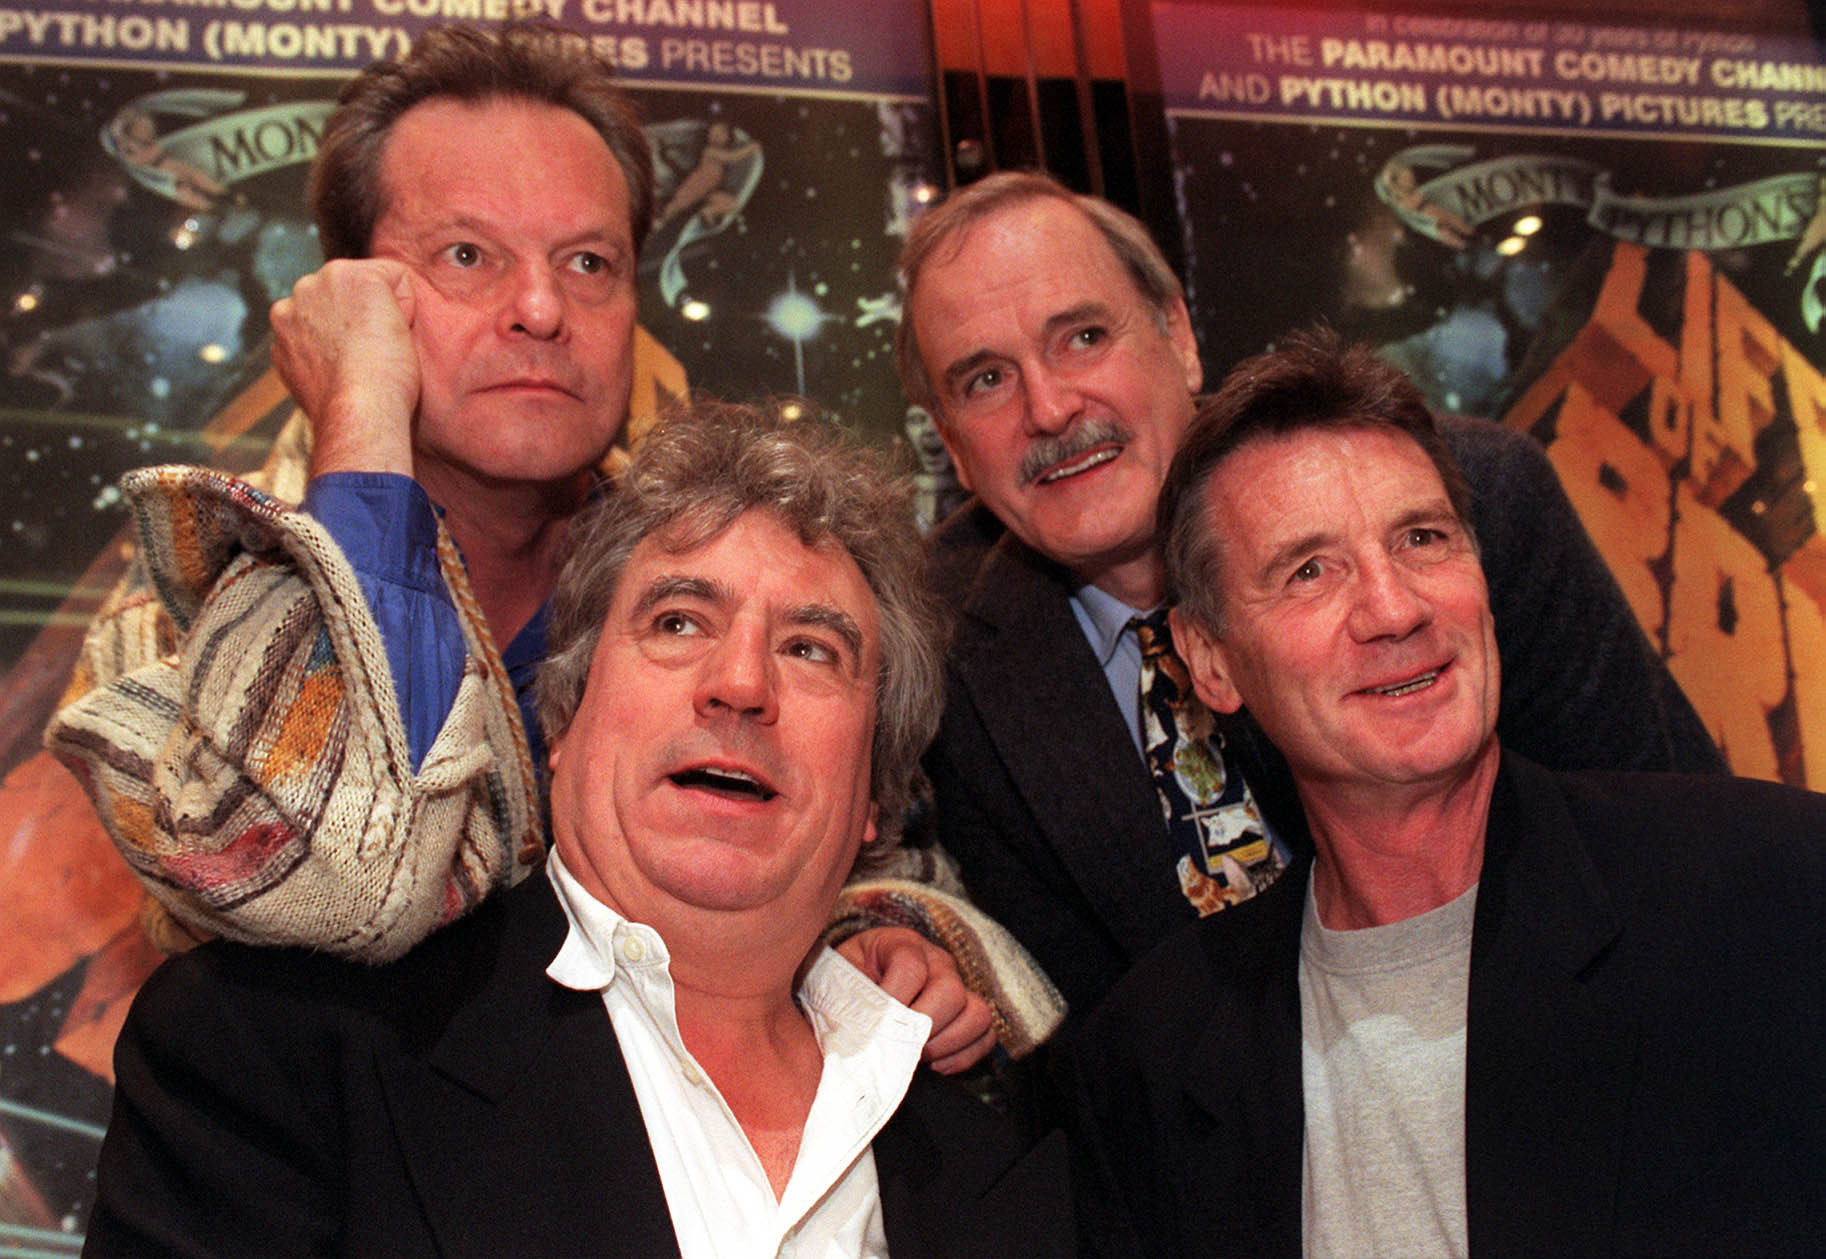 Monty Python stars (L-R) Terry Gilliam, Terry Jones, John Cleese and Michael Palin celebrate their 30th anniversary. (Justin Williams/PA)